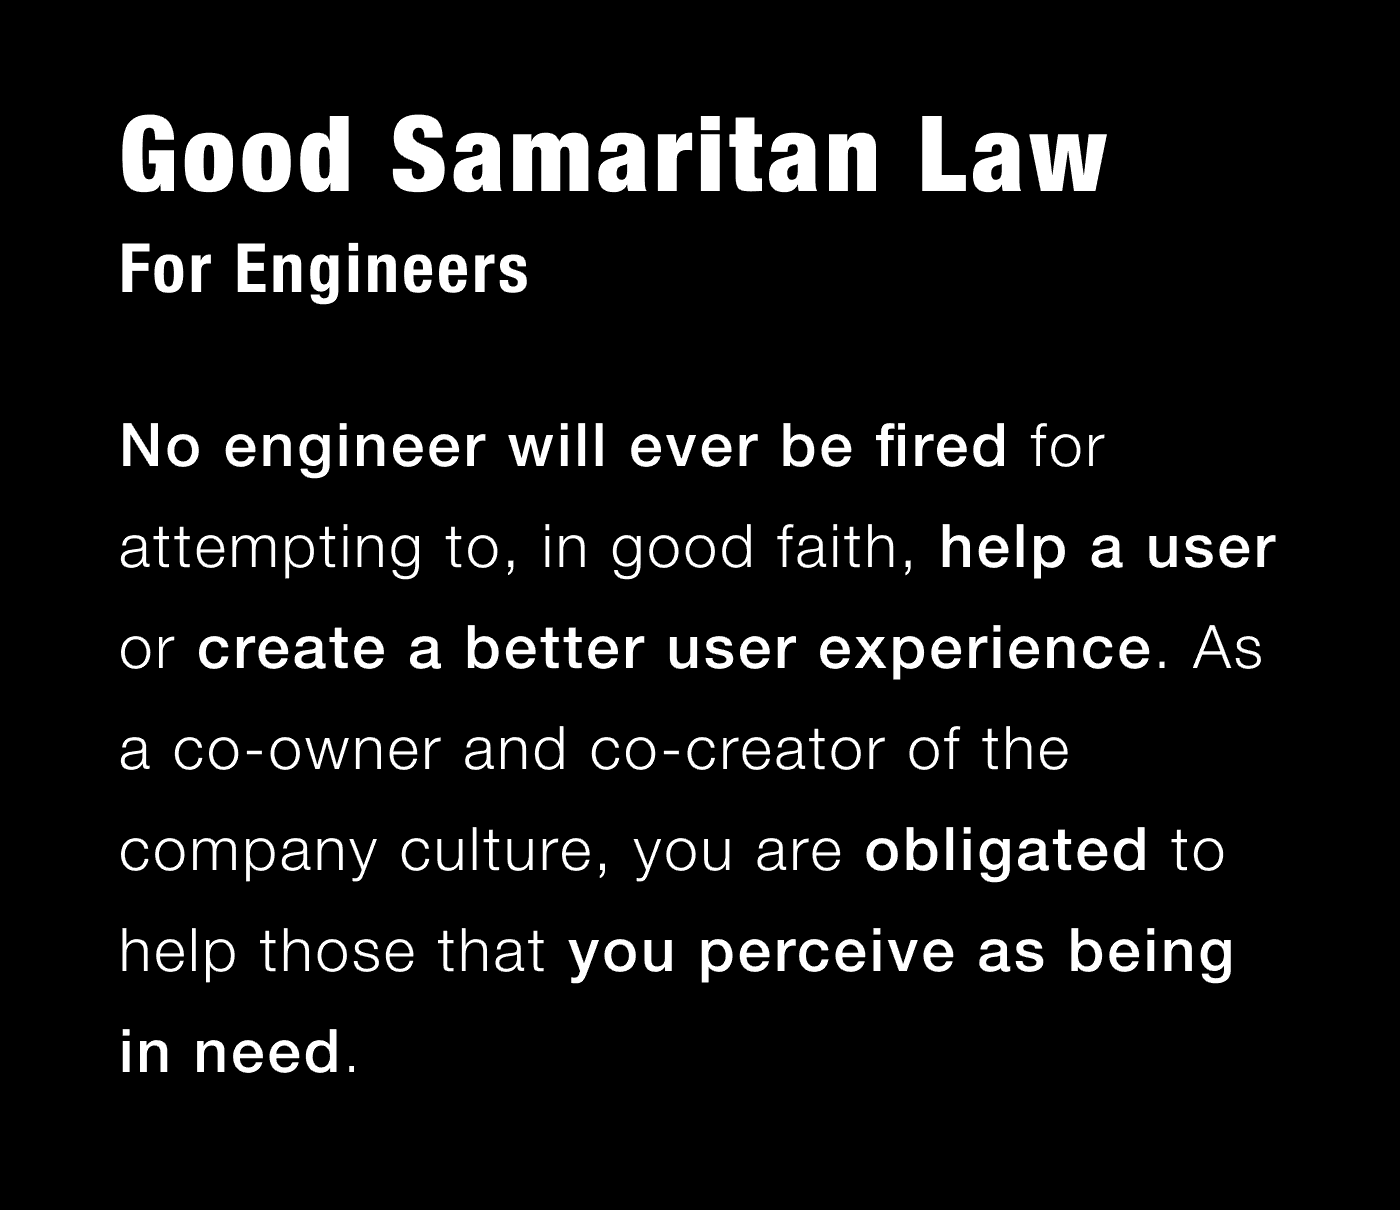 Good Samaritan Law For Engineers: No engineer will ever be fired for attempting to, in good faith, help a user or try to create a better user experience. As a co-owner and co-creator of the company culture, you are obligated to help those that you perceive as being in need.